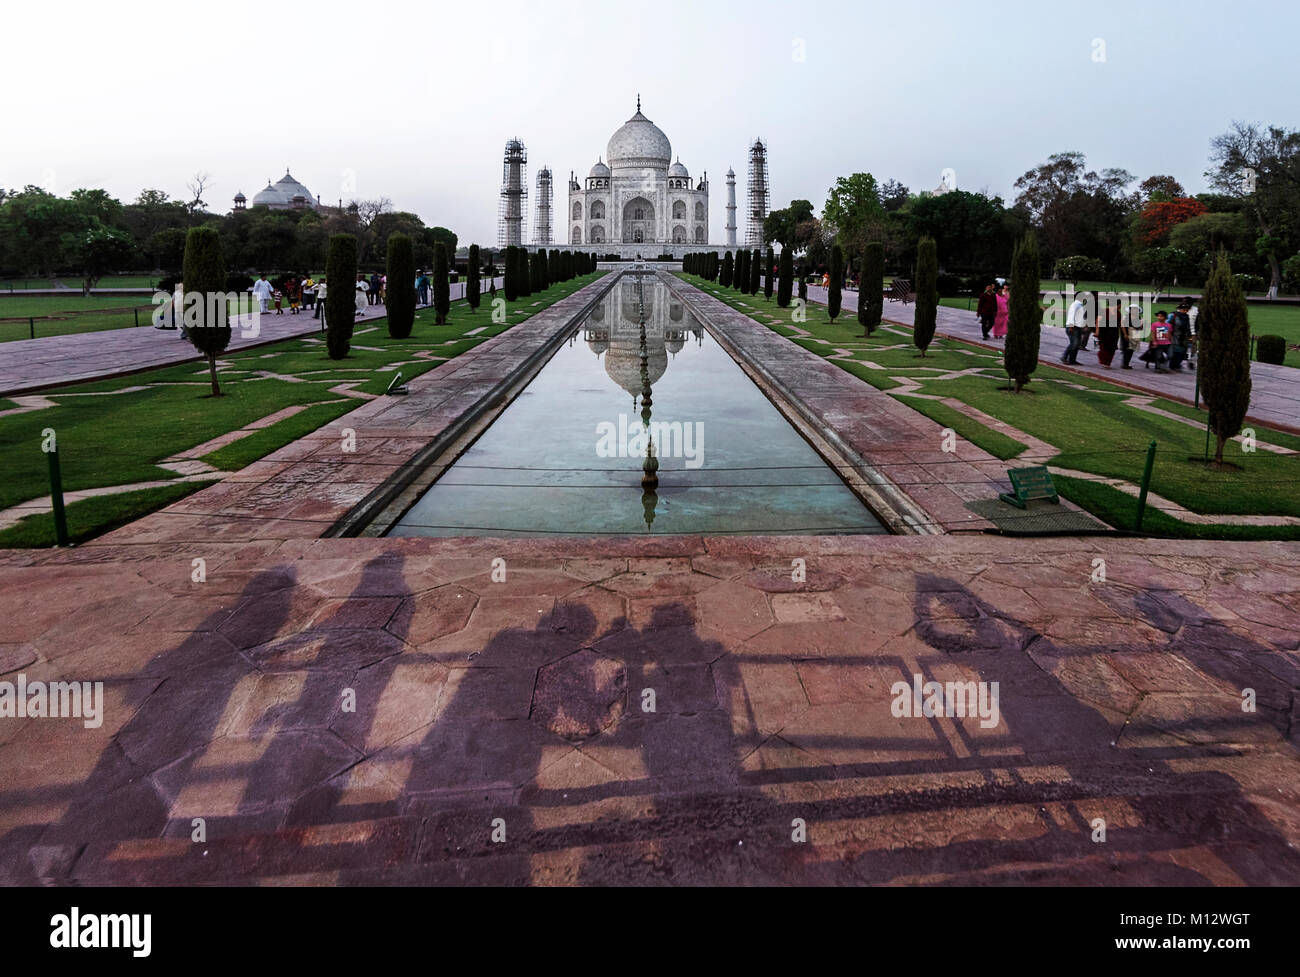 Iconic view of Taj Mahal one of the World Wonders, Agra, India - Stock Image